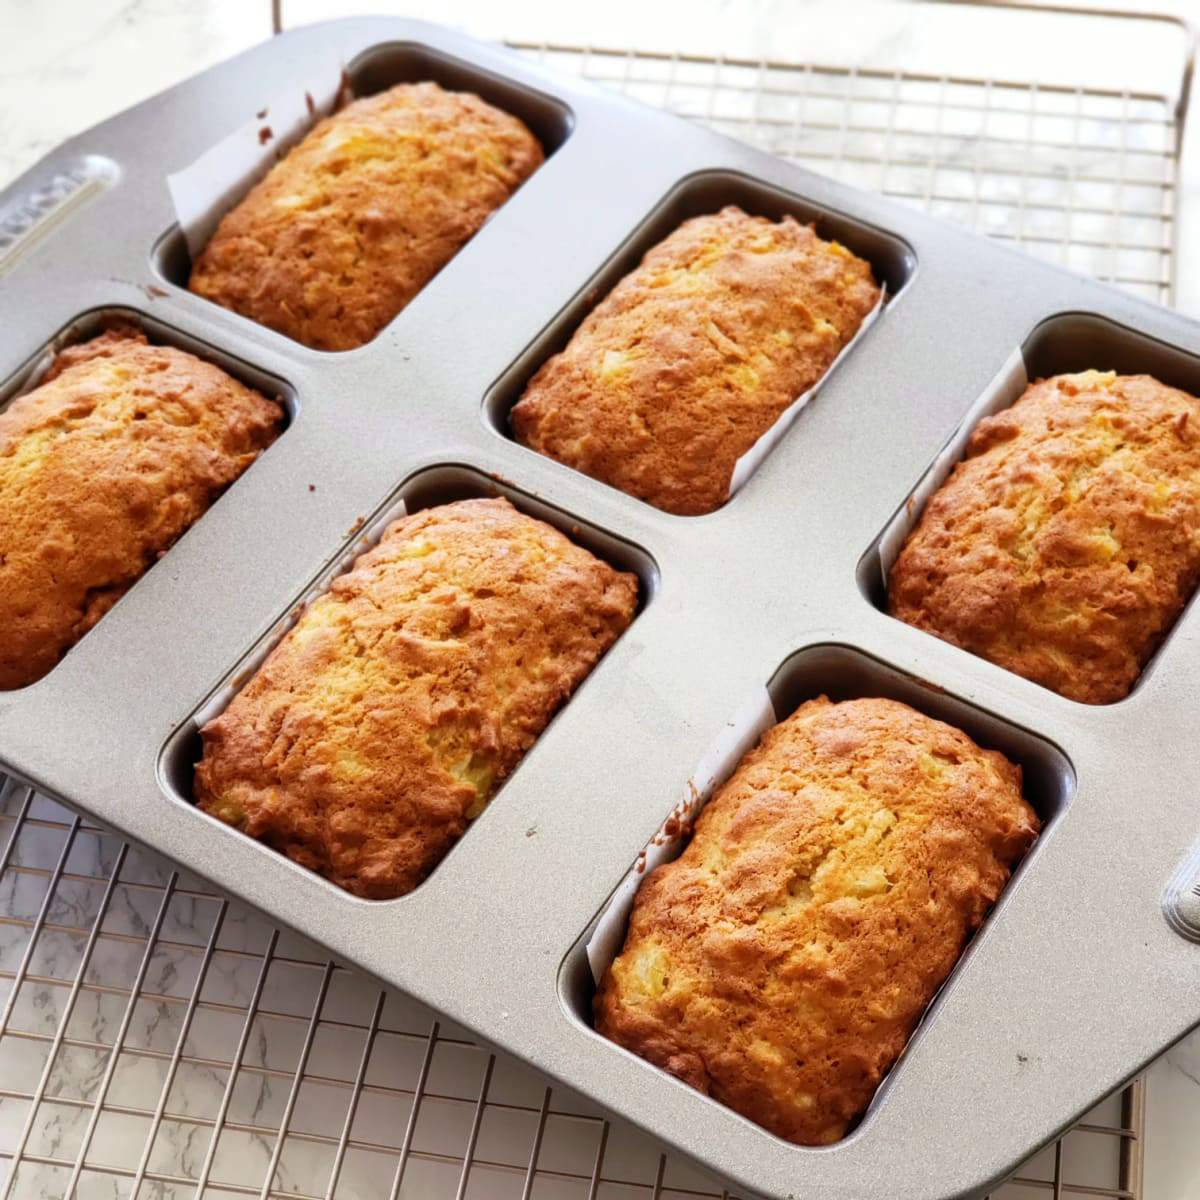 6 Baked loaves in the silver mini loaf pan on a wire rack